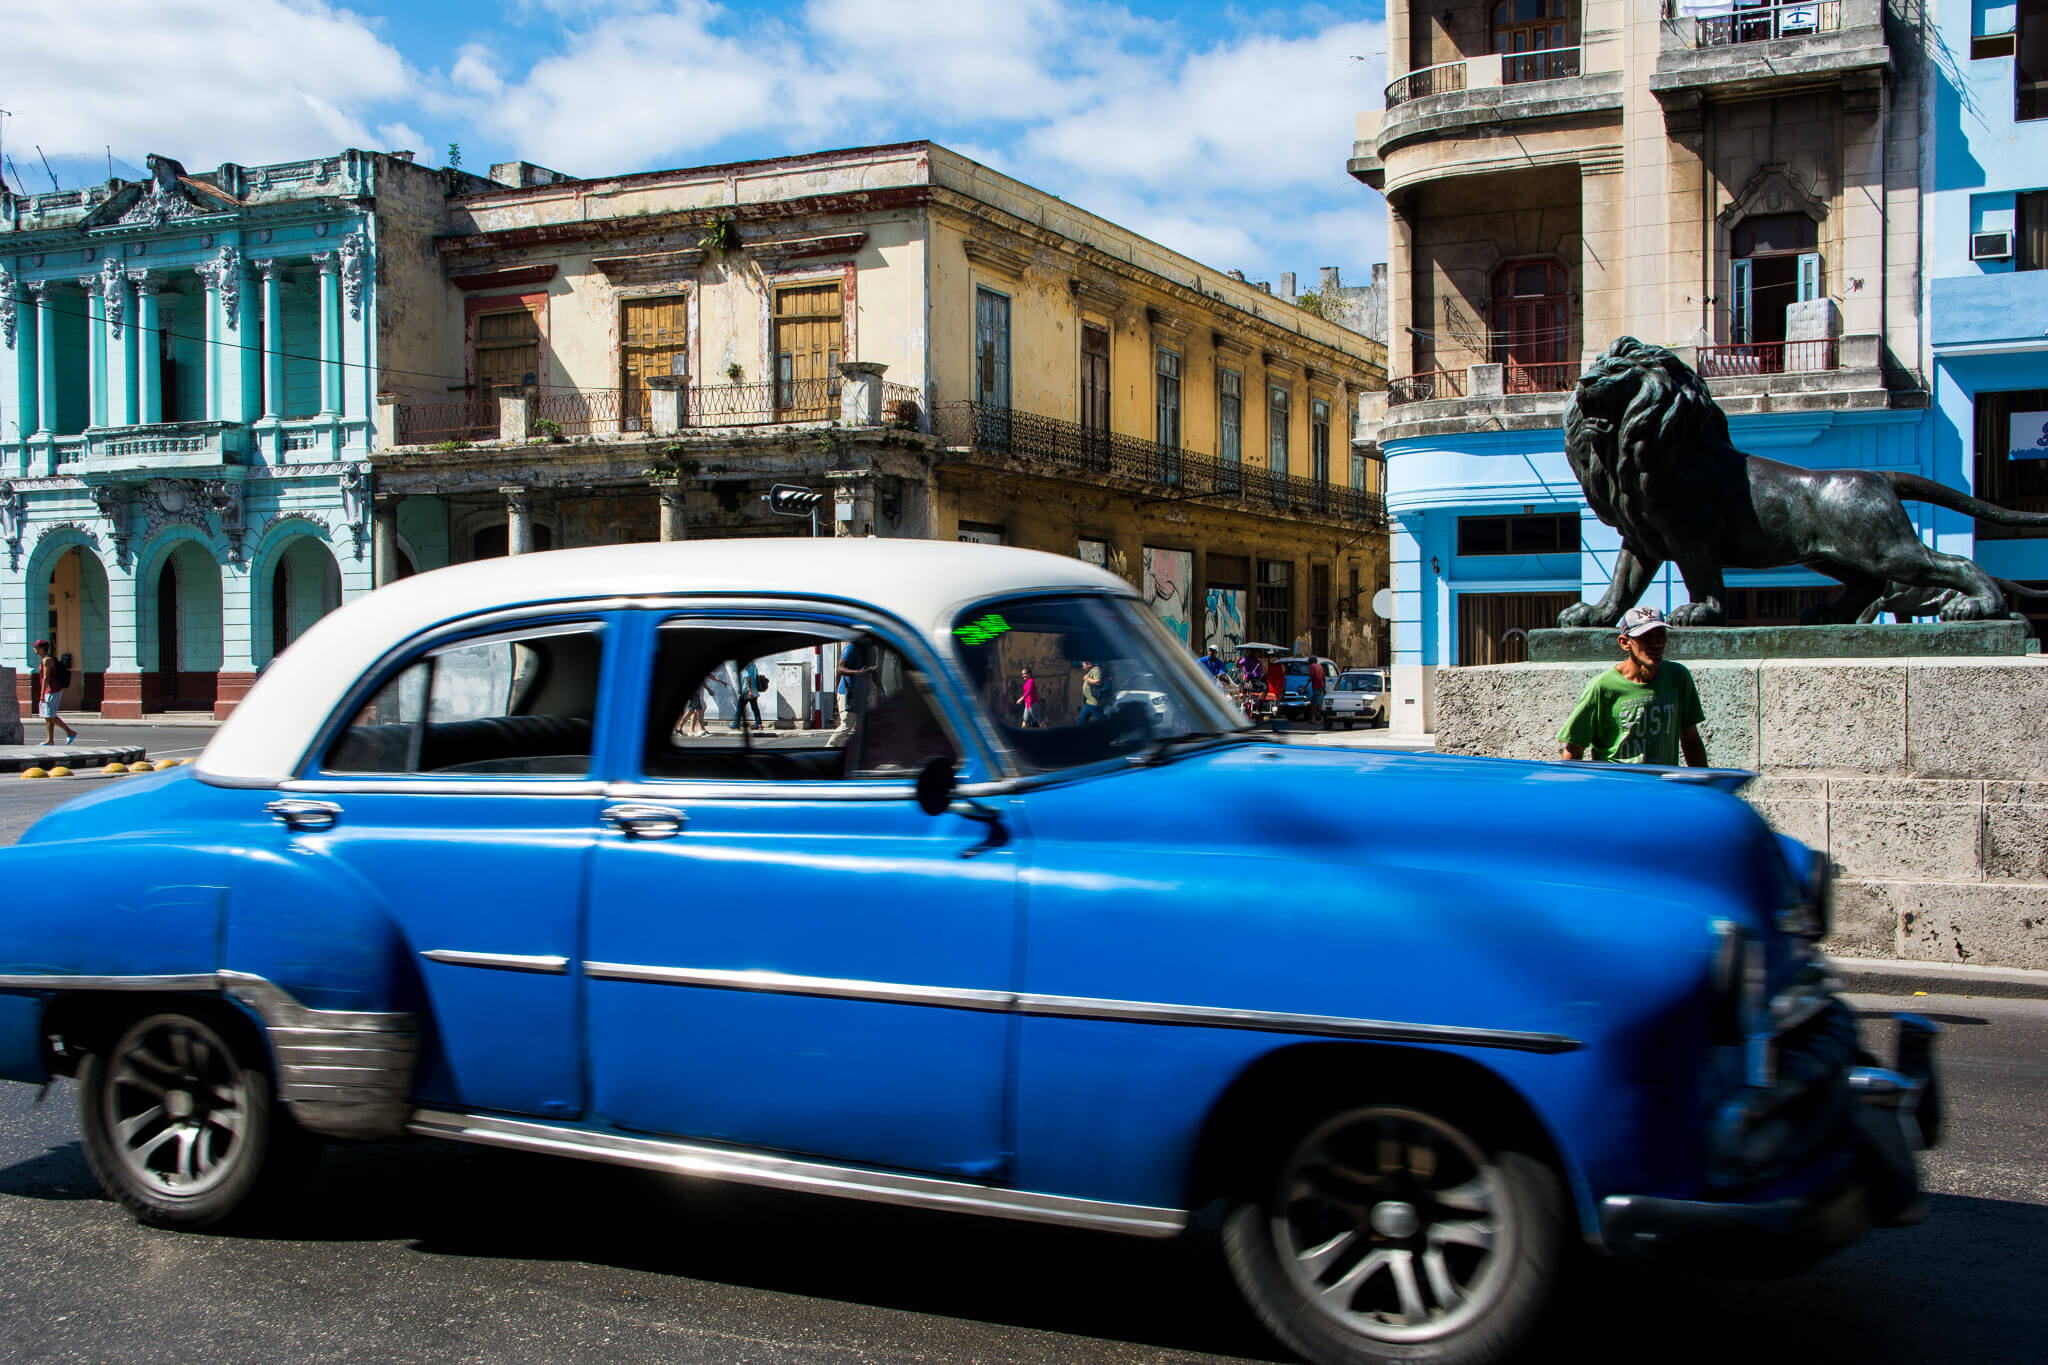 The strets of Old Havana